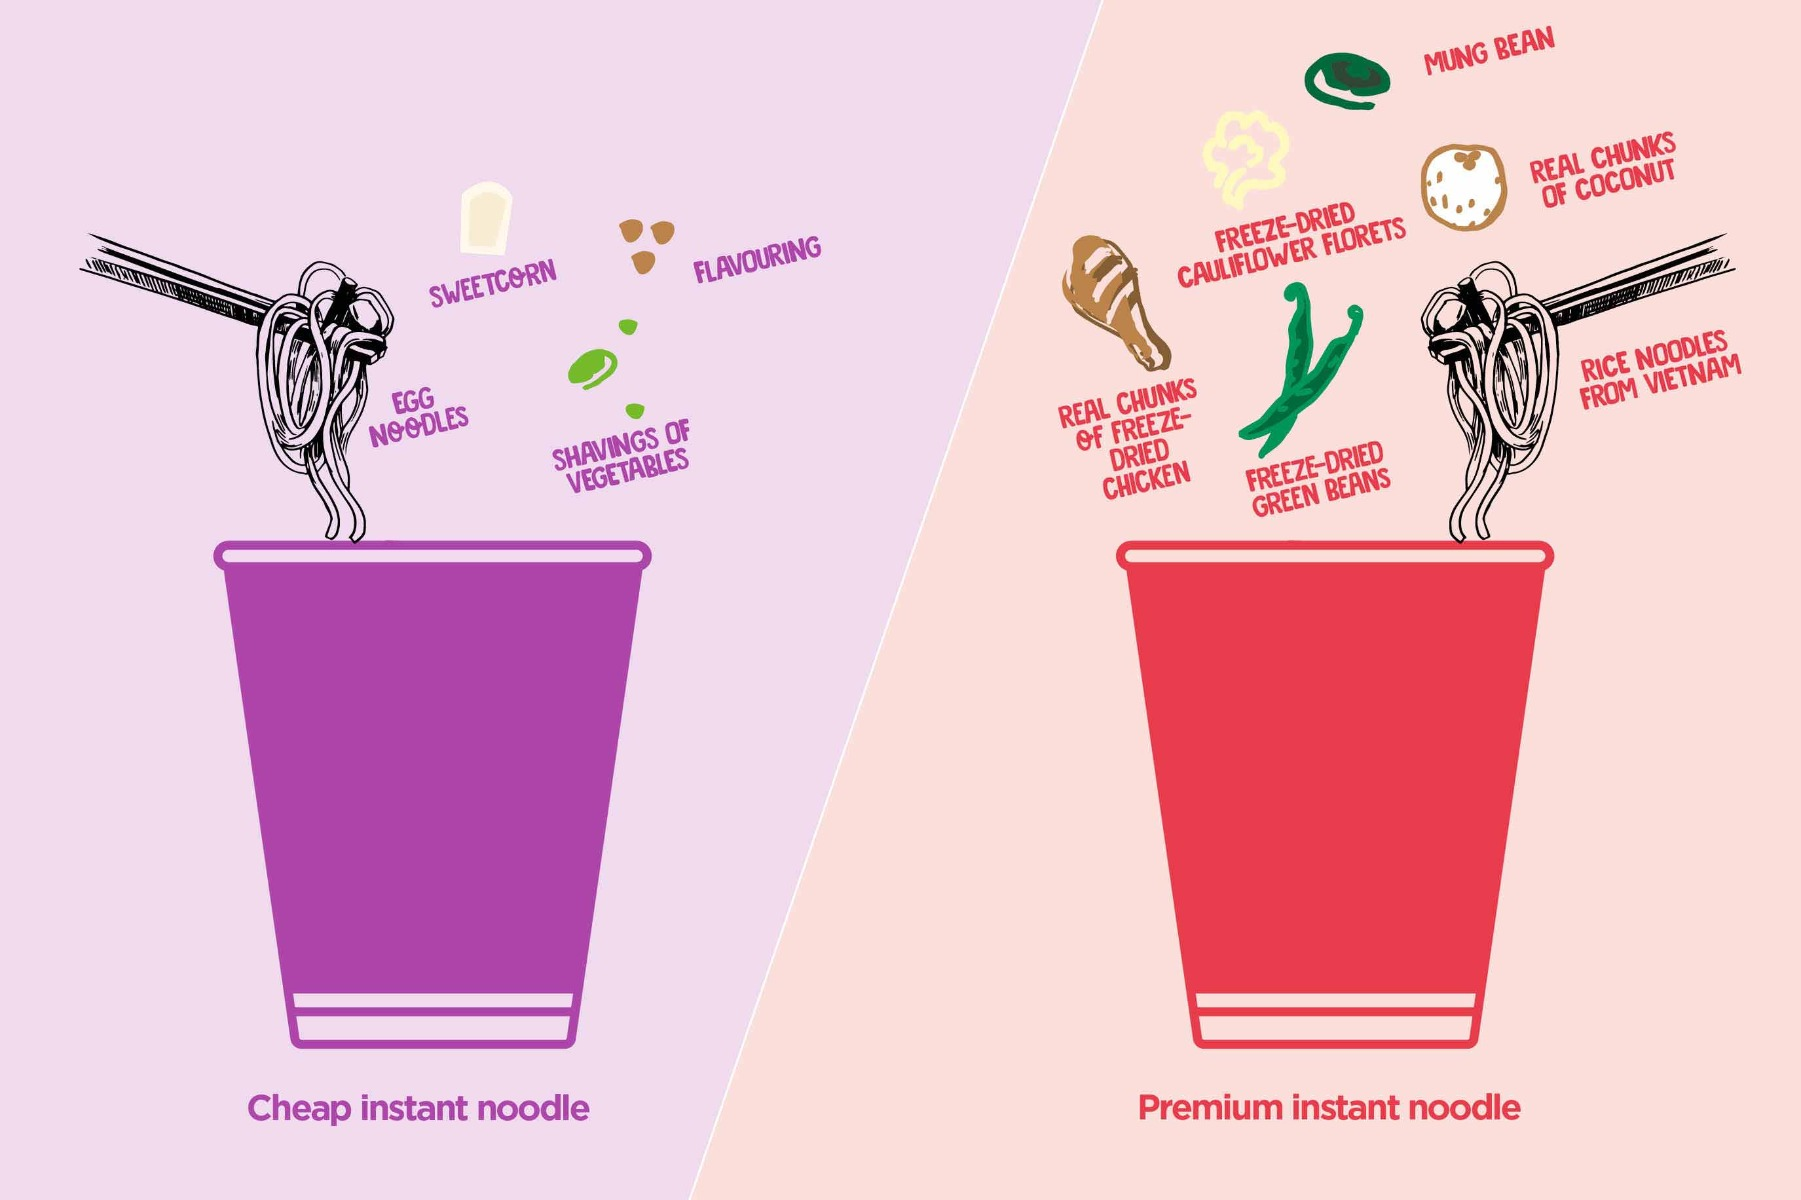 Difference between quantities of ingredients in cheap instant noodles and premium instant noodles